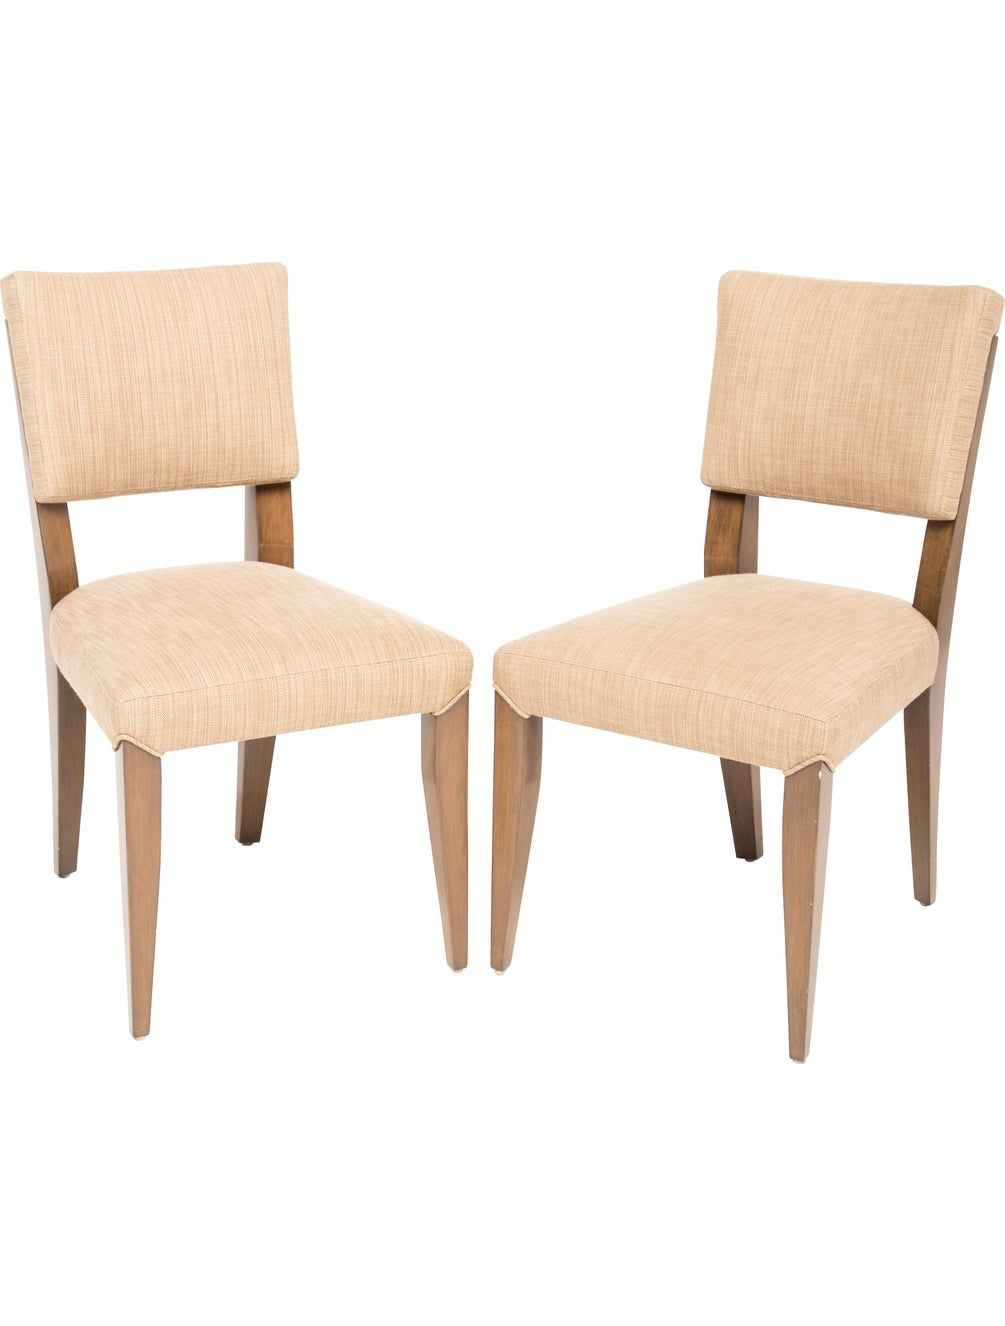 Pair Of Artistic Frame Dining Chairs Dining Chairs Furniture Chair